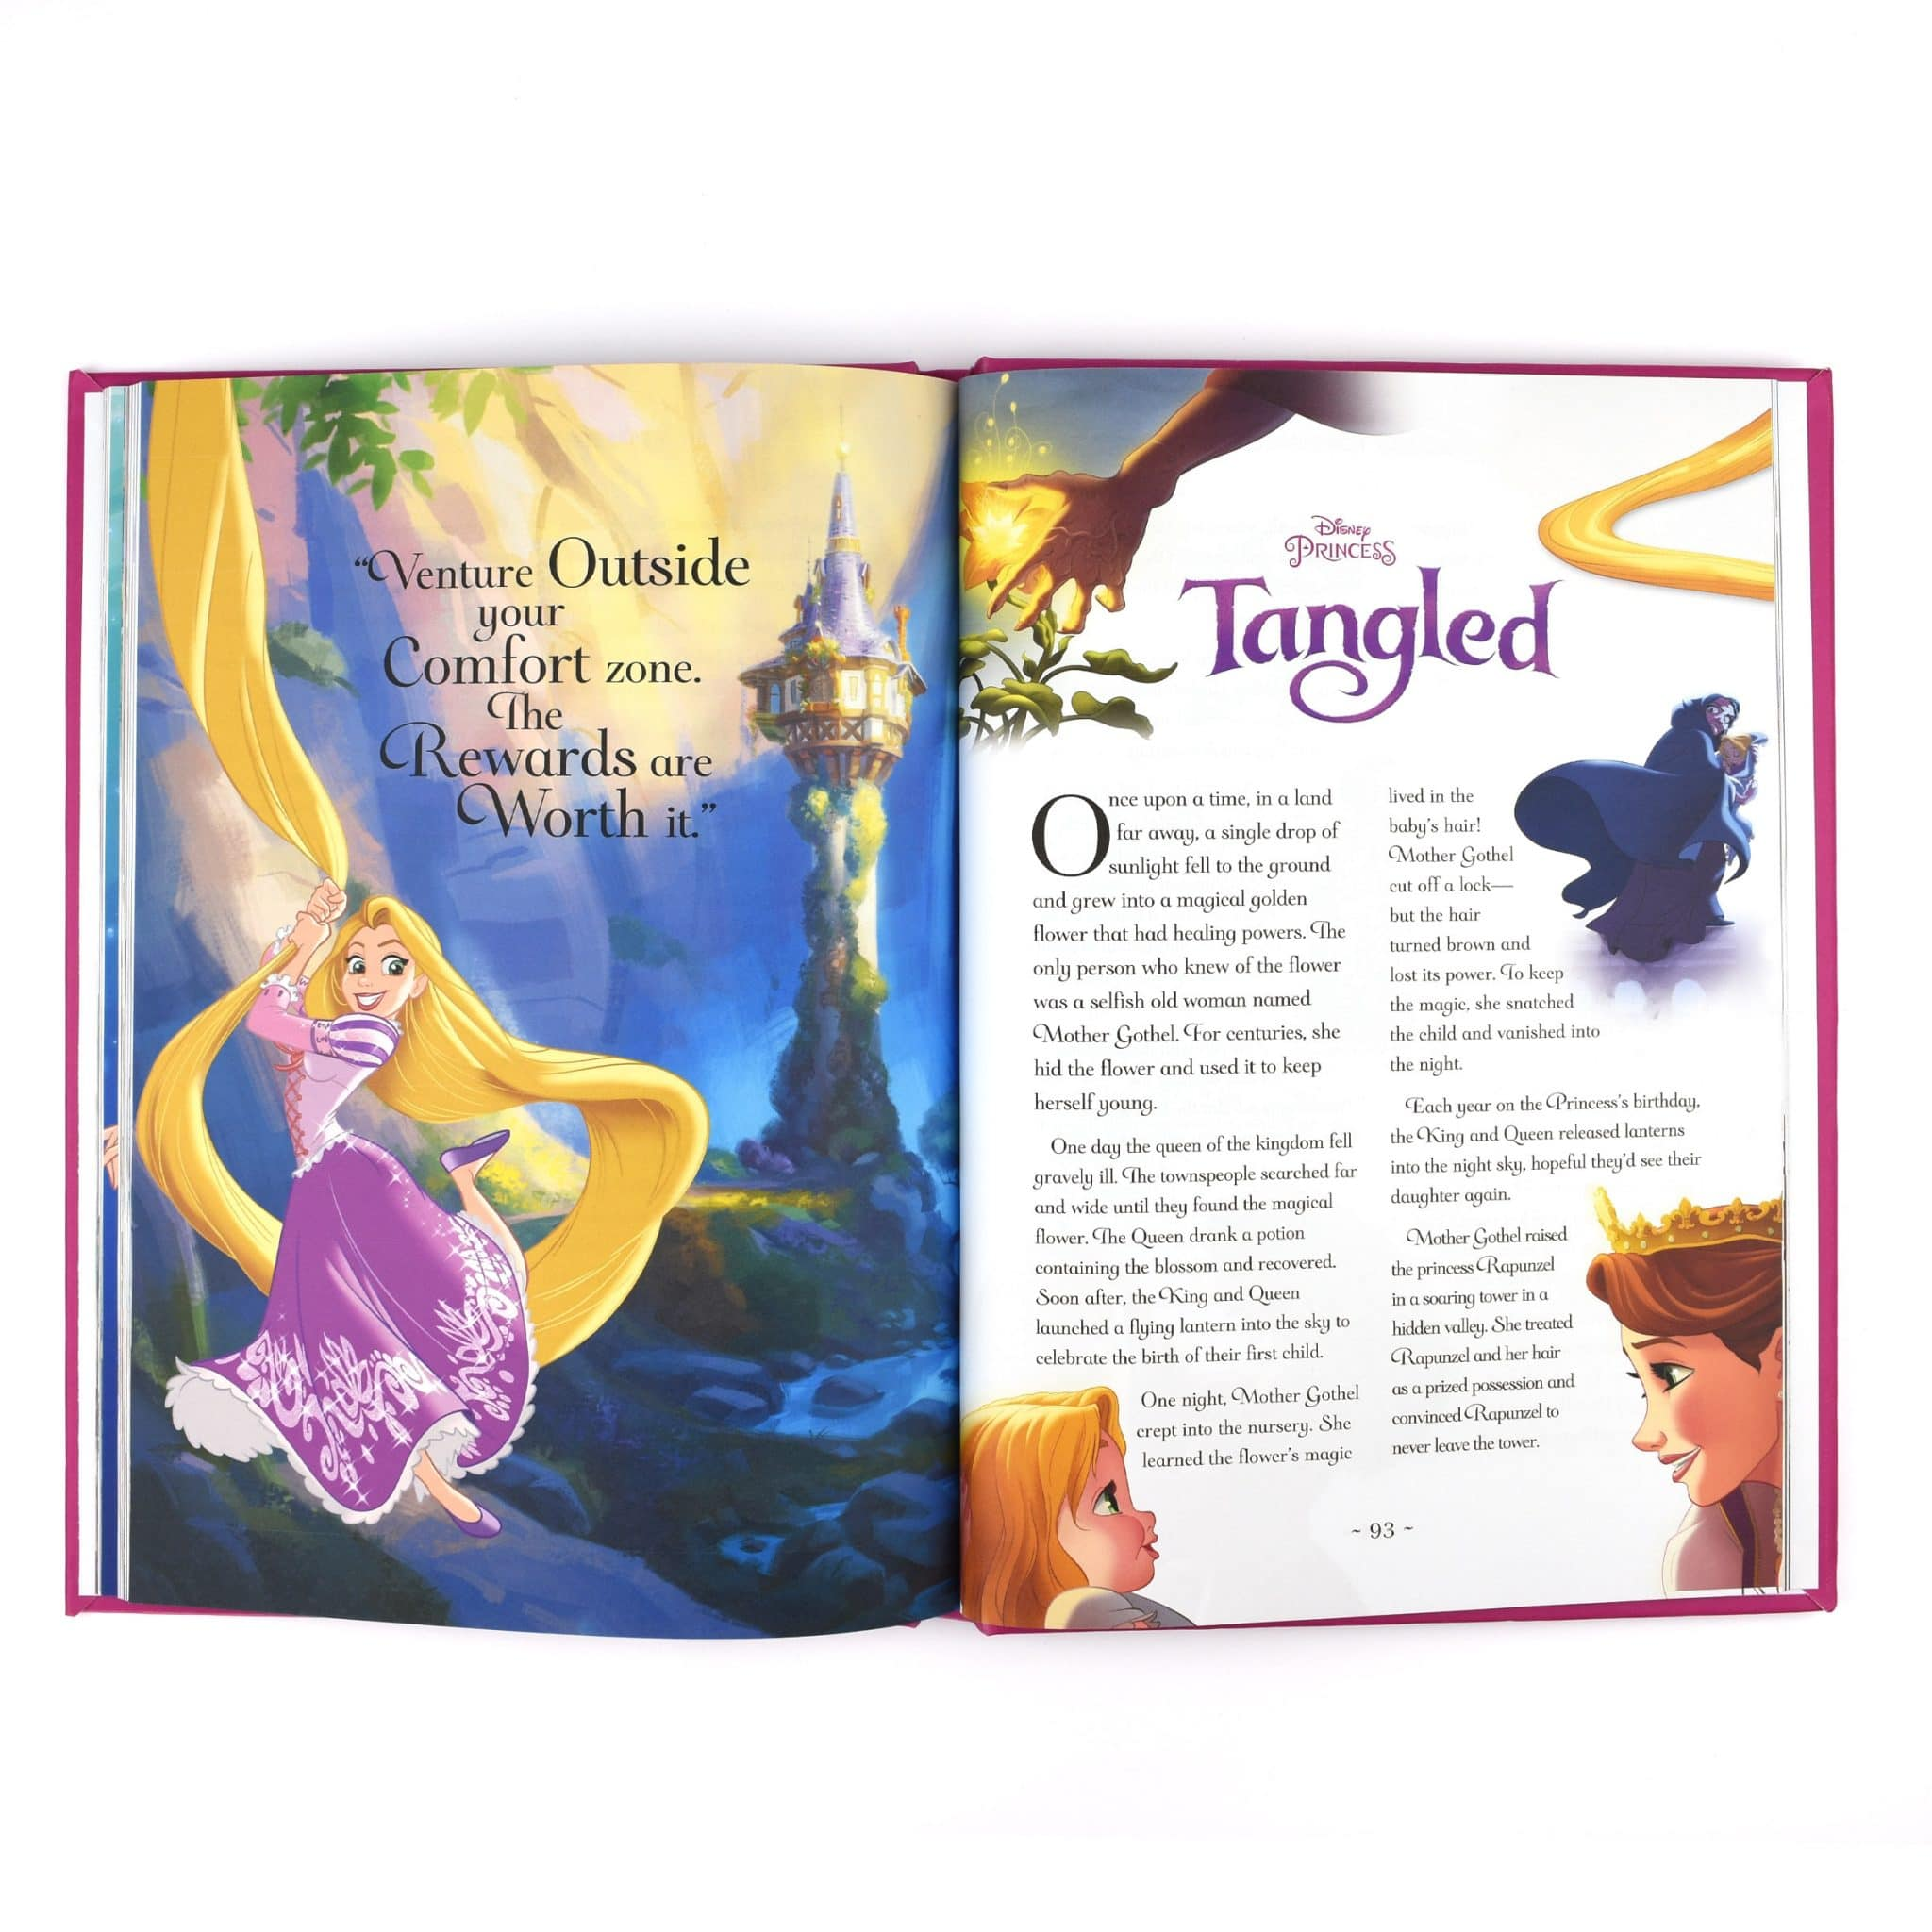 Disney Info Sites: The Personalized Disney Princess Ultimate Collection